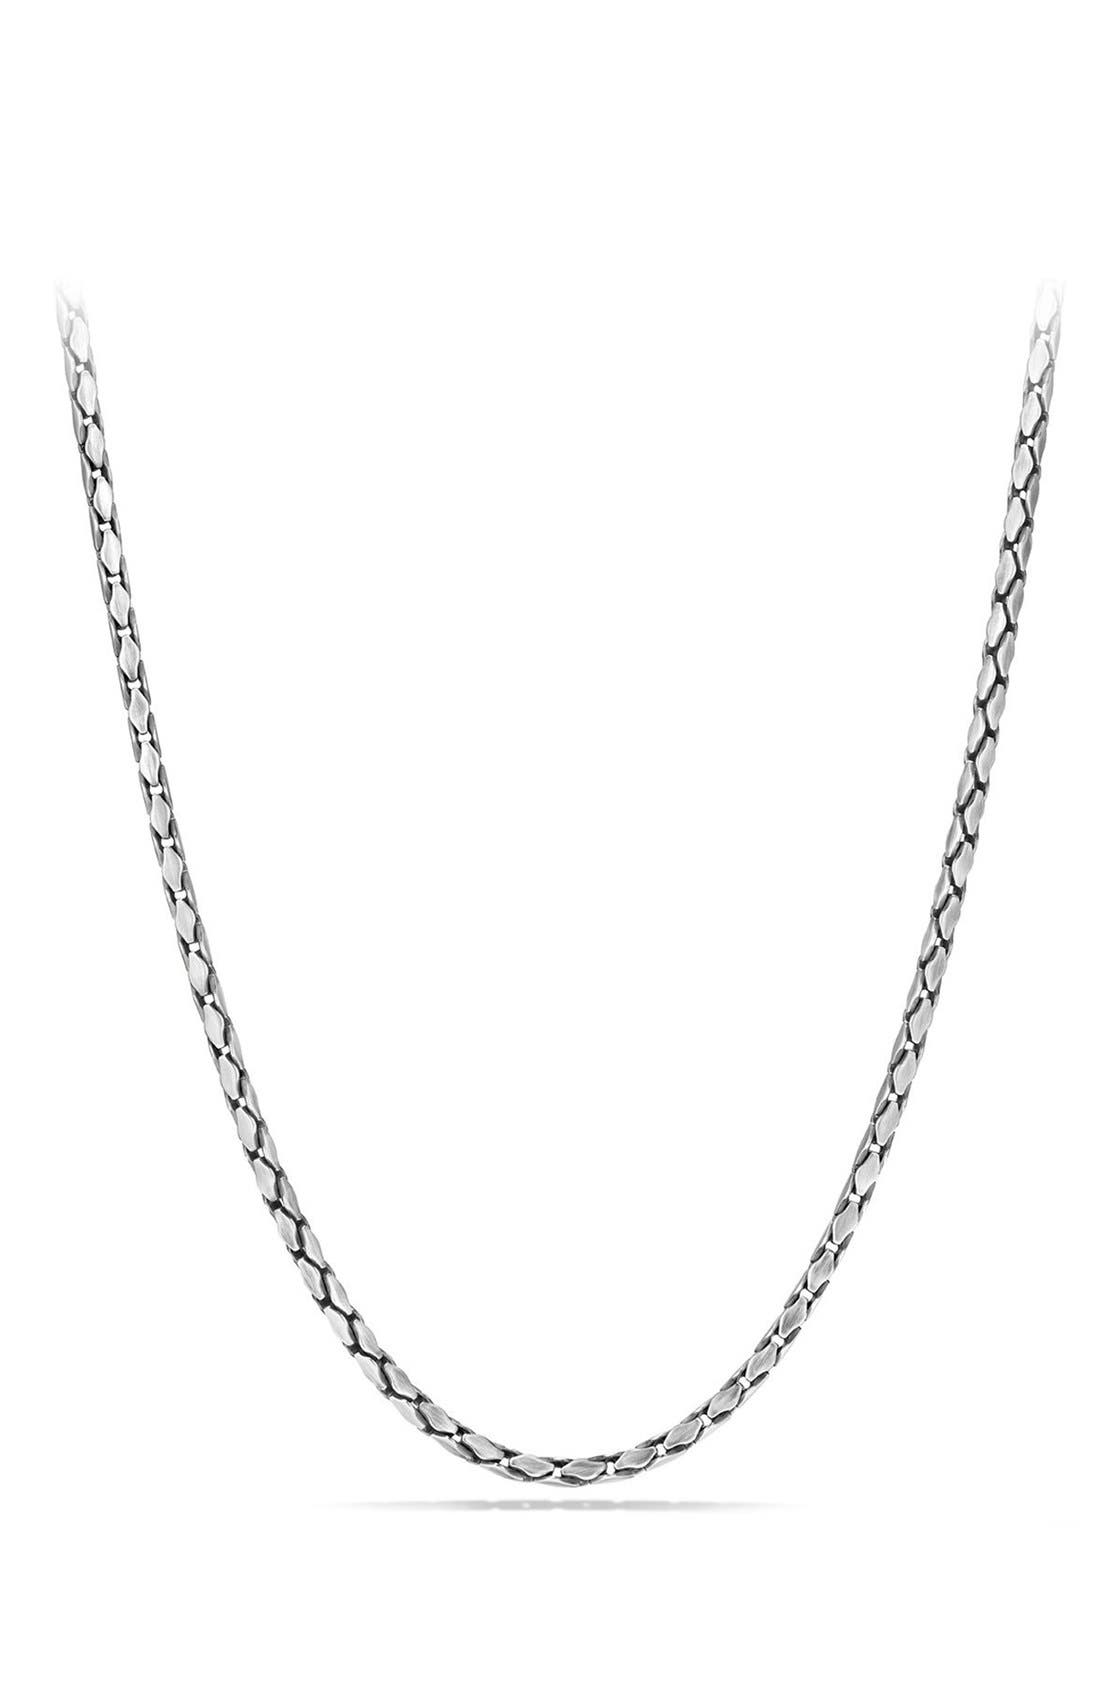 Main Image - David Yurman 'Chain' Small Fluted Chain Necklace, 3.8mm